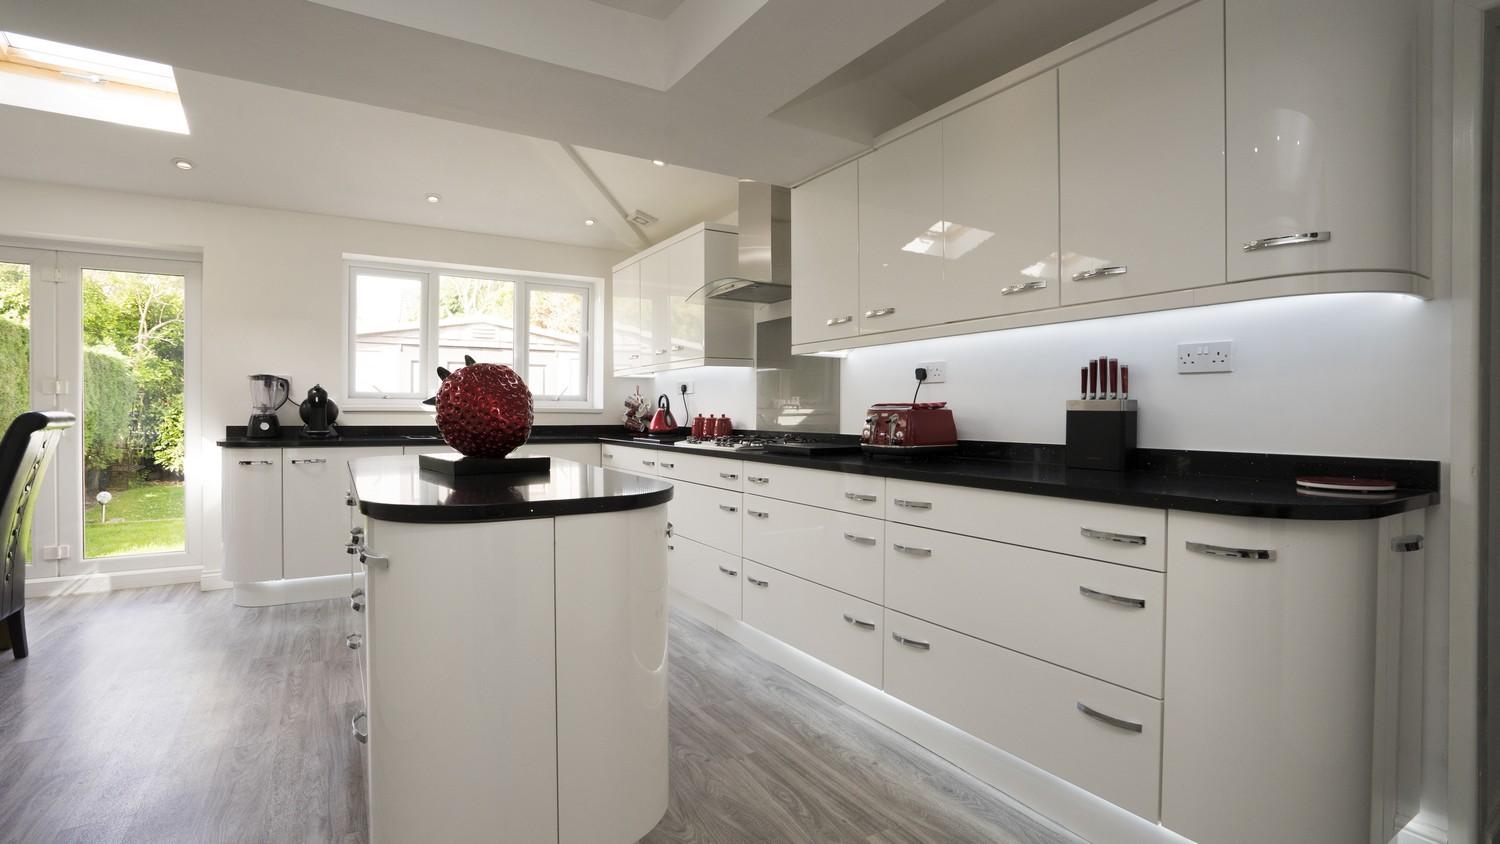 Gloss white kitchen with chrome handles featuring various draw units and rounded corner cupboards.